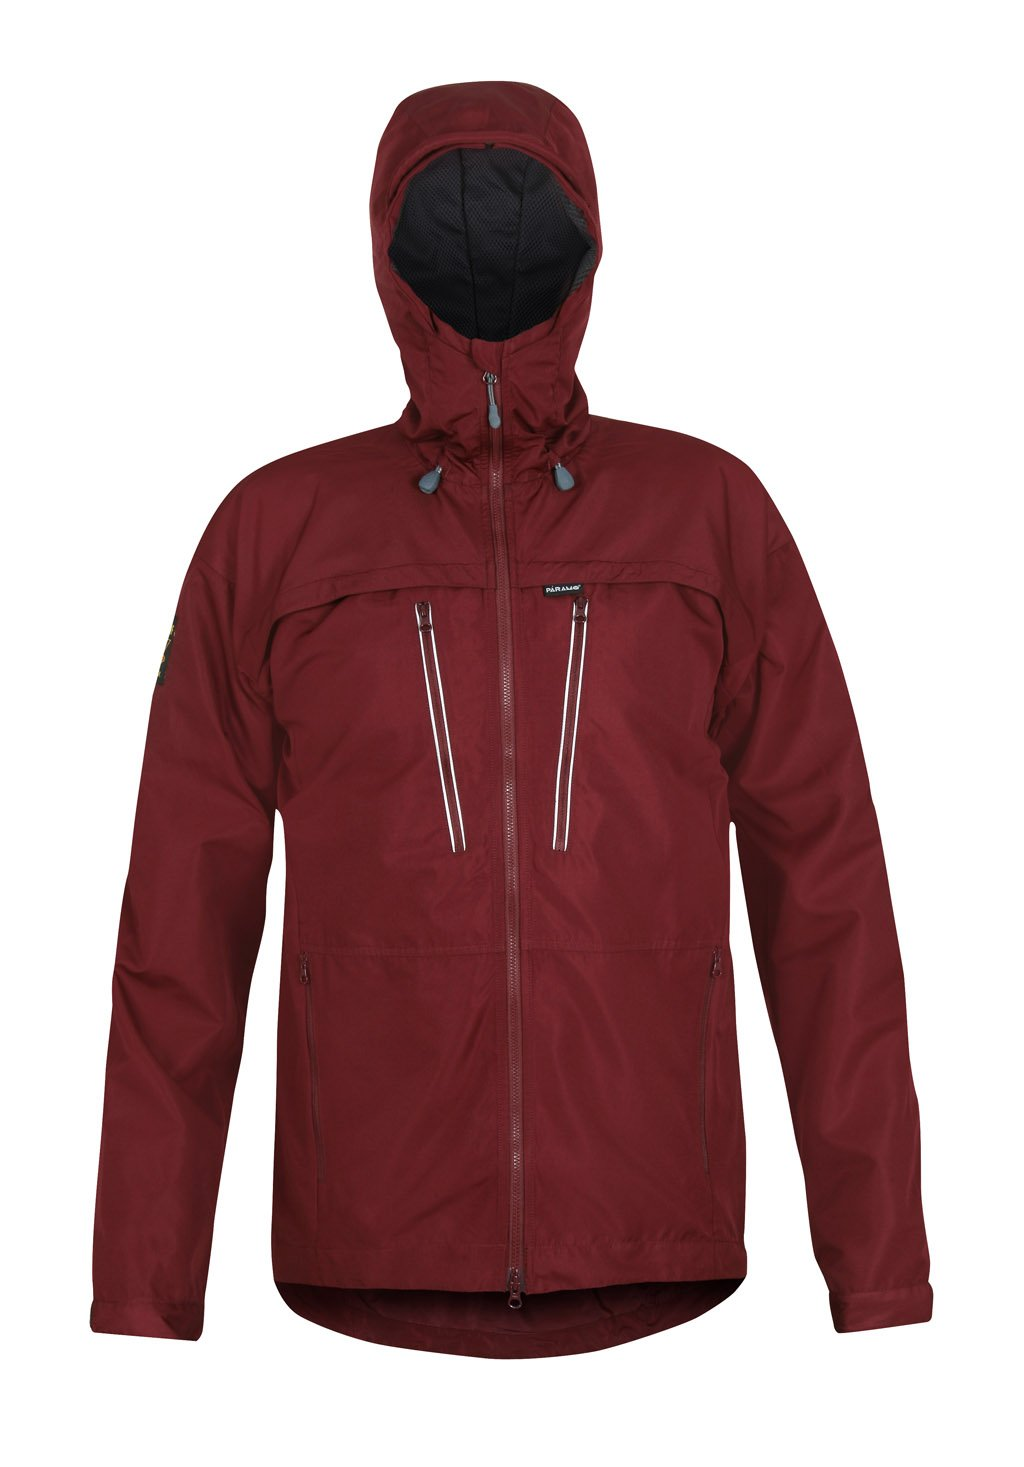 Paramo Directional Clothing Systems Herren Bentu Windproof Jacket Jacke